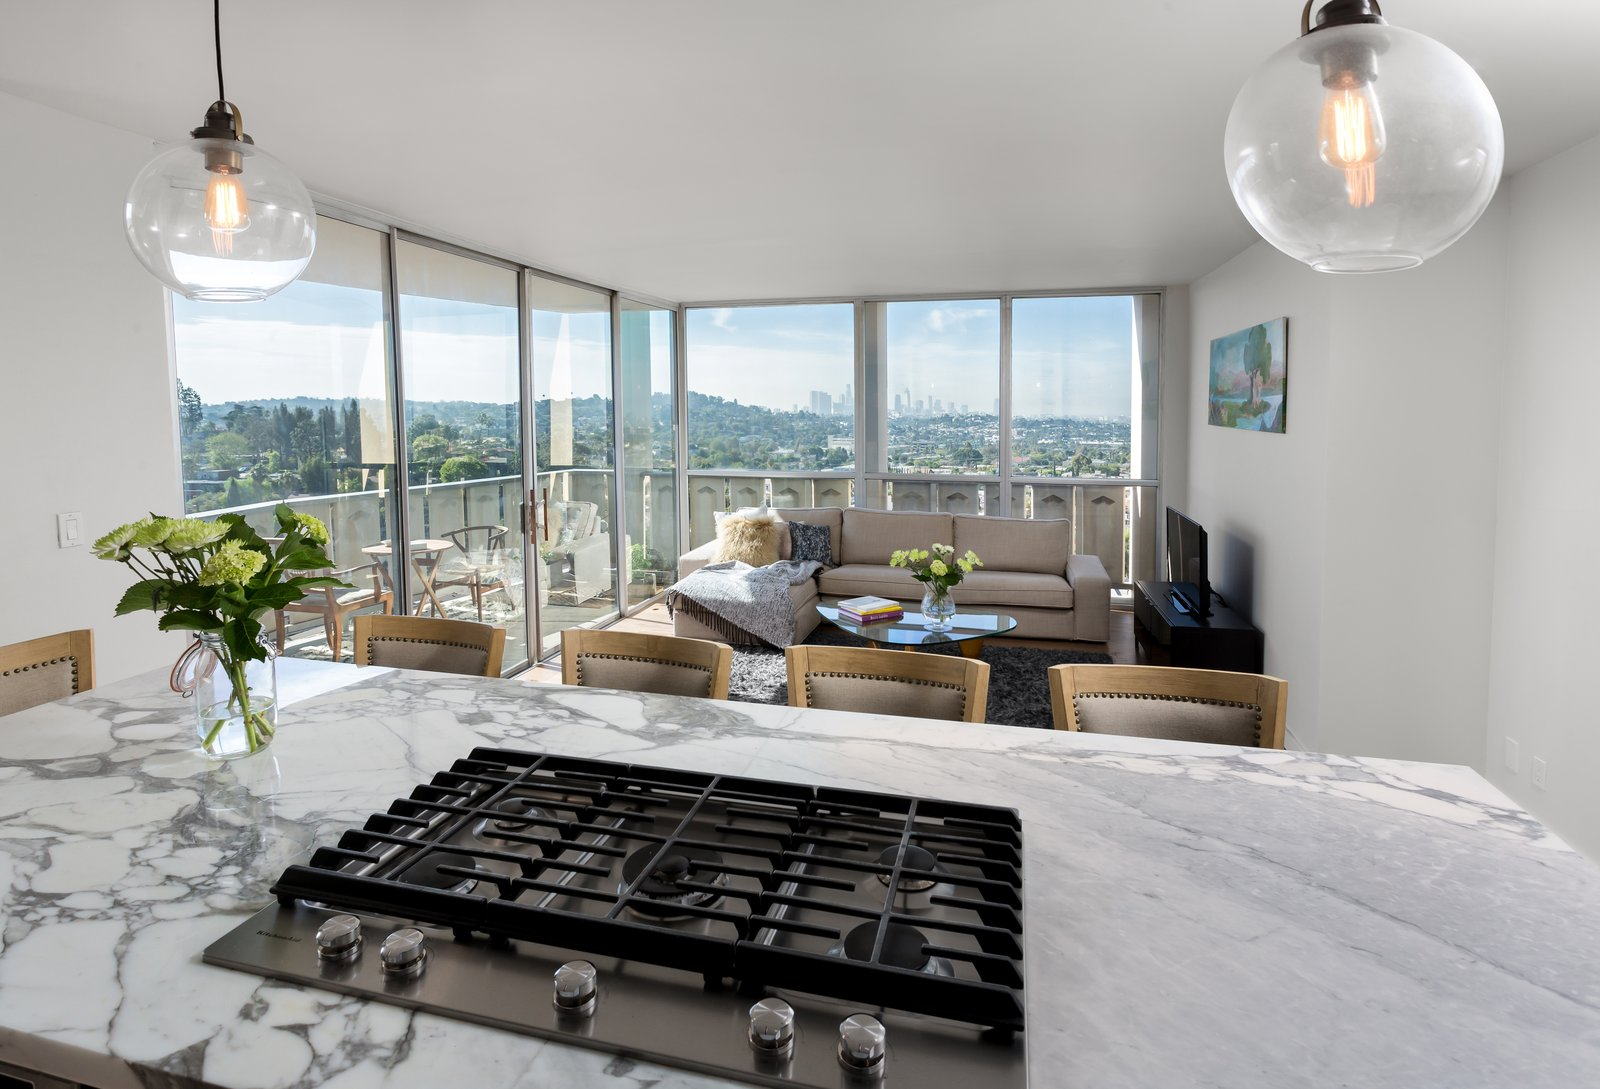 Sofa, Coffee Tables, Chair, Console Tables, Medium Hardwood Floor, Pendant Lighting, Metal, Windows, Exterior, Sliding Door Type, and Picture Window Type View of the city from the kitchen island   LFT Residence by Hsu McCullough